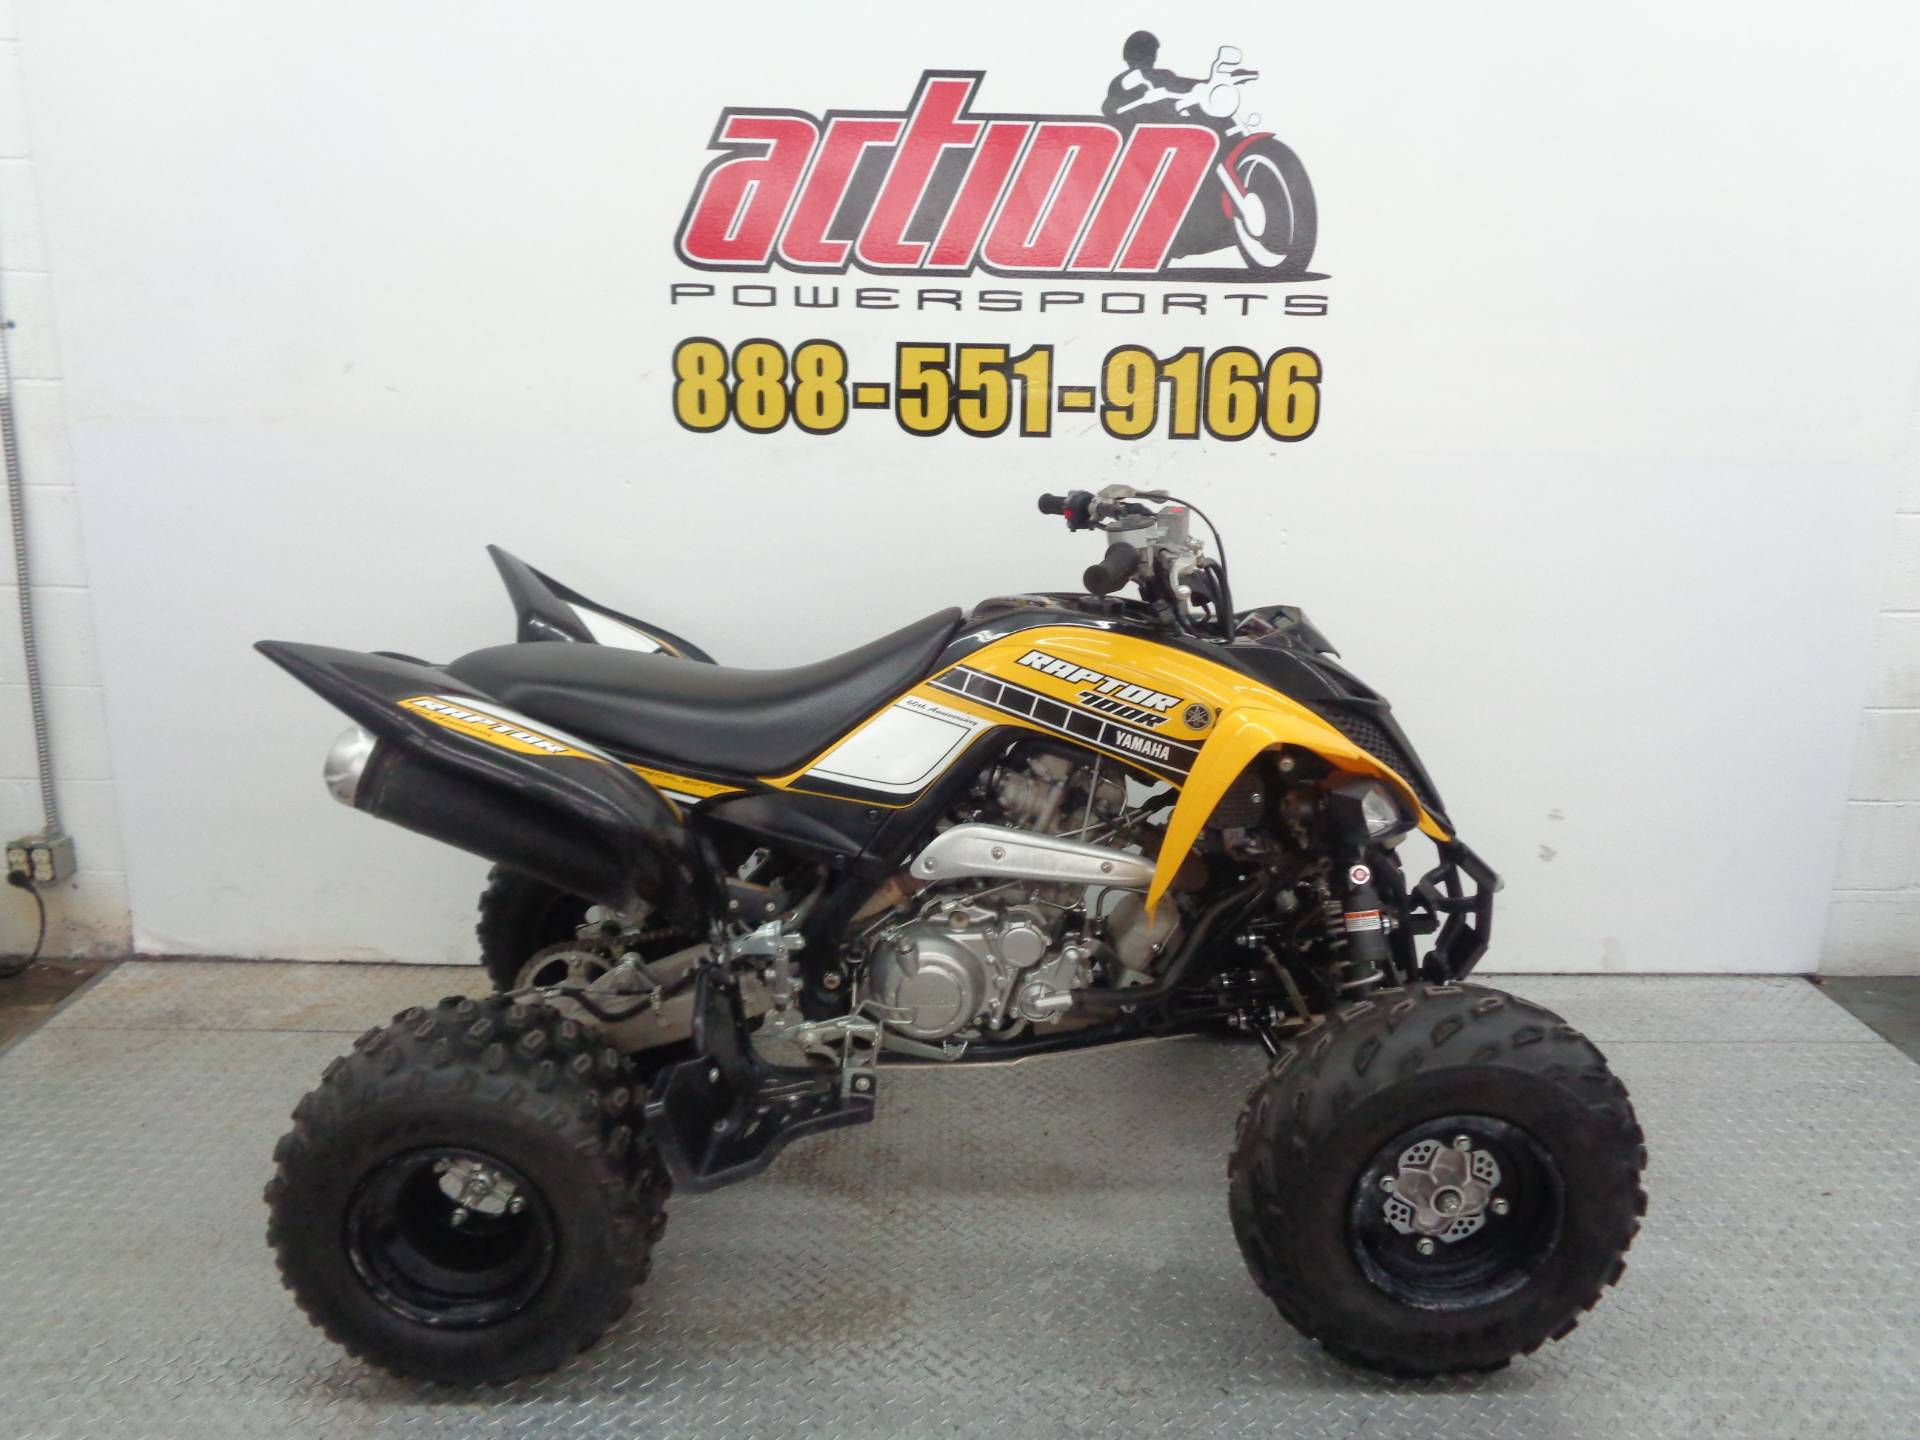 2016 Yamaha Raptor 700r Se In Tulsa Oklahoma Photo 1